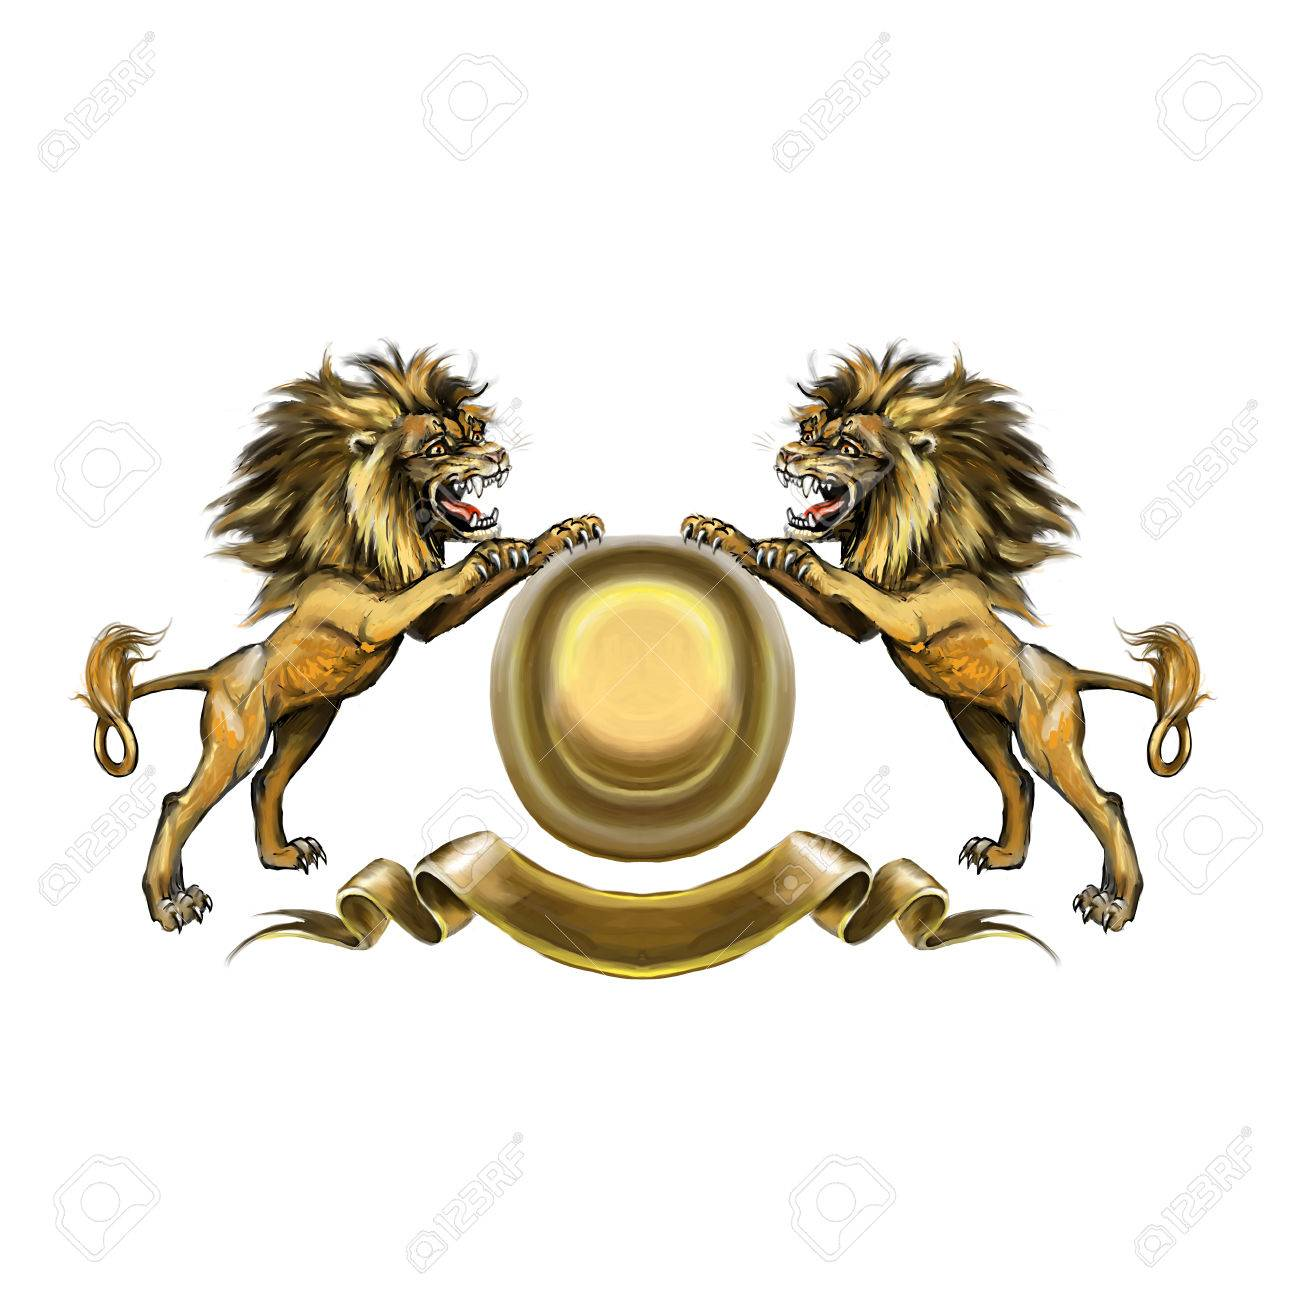 Lions, coat of arms, attacking, heraldic symbol Stock Photo - 73014769